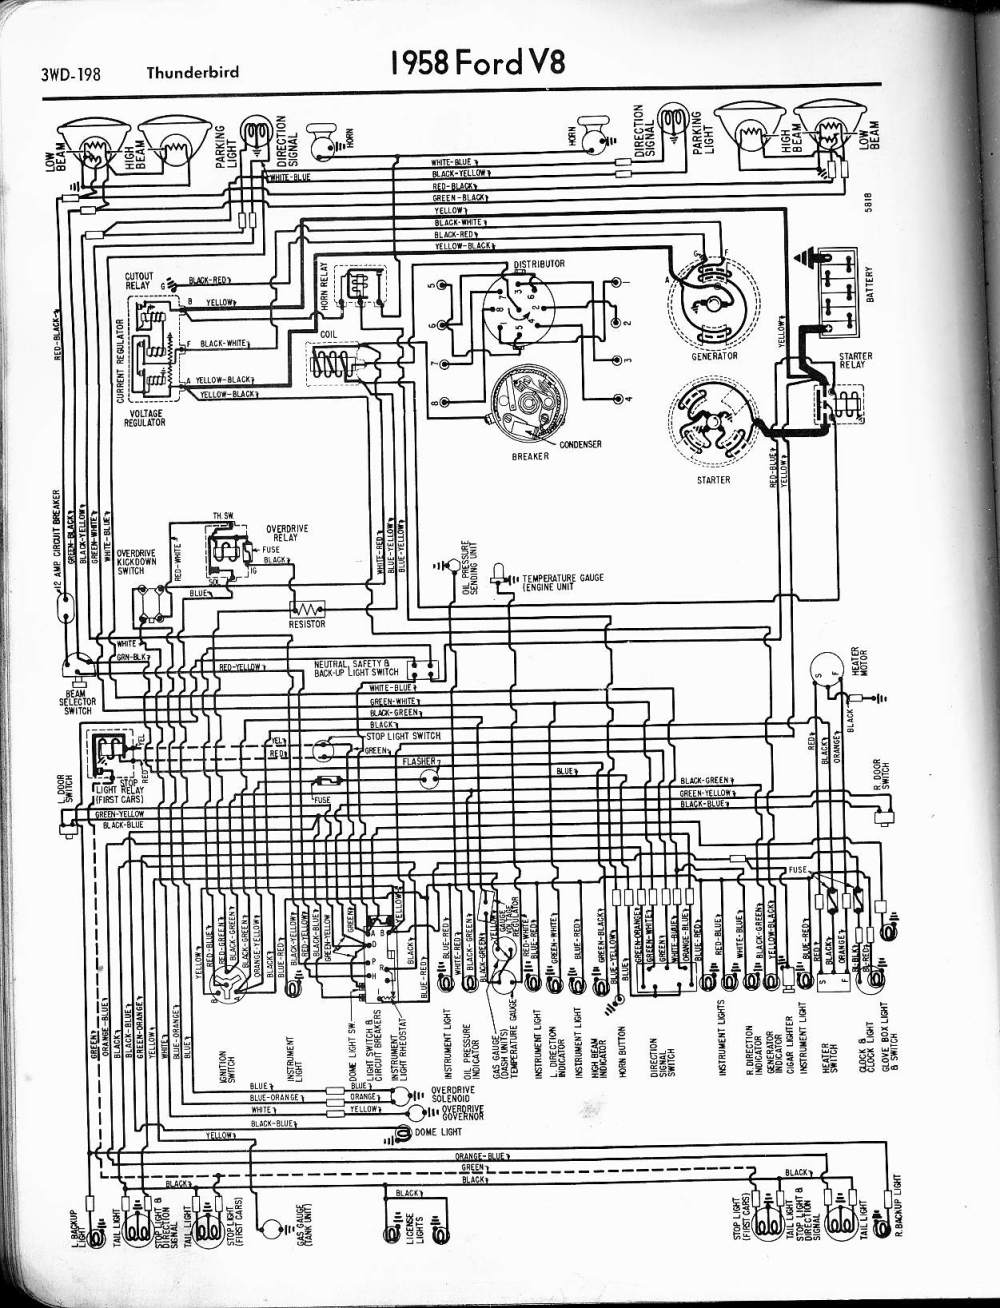 medium resolution of 1955 ford wiring schematic wiring diagram blog 1955 ford thunderbird wiring diagram 1955 ford wiring diagram